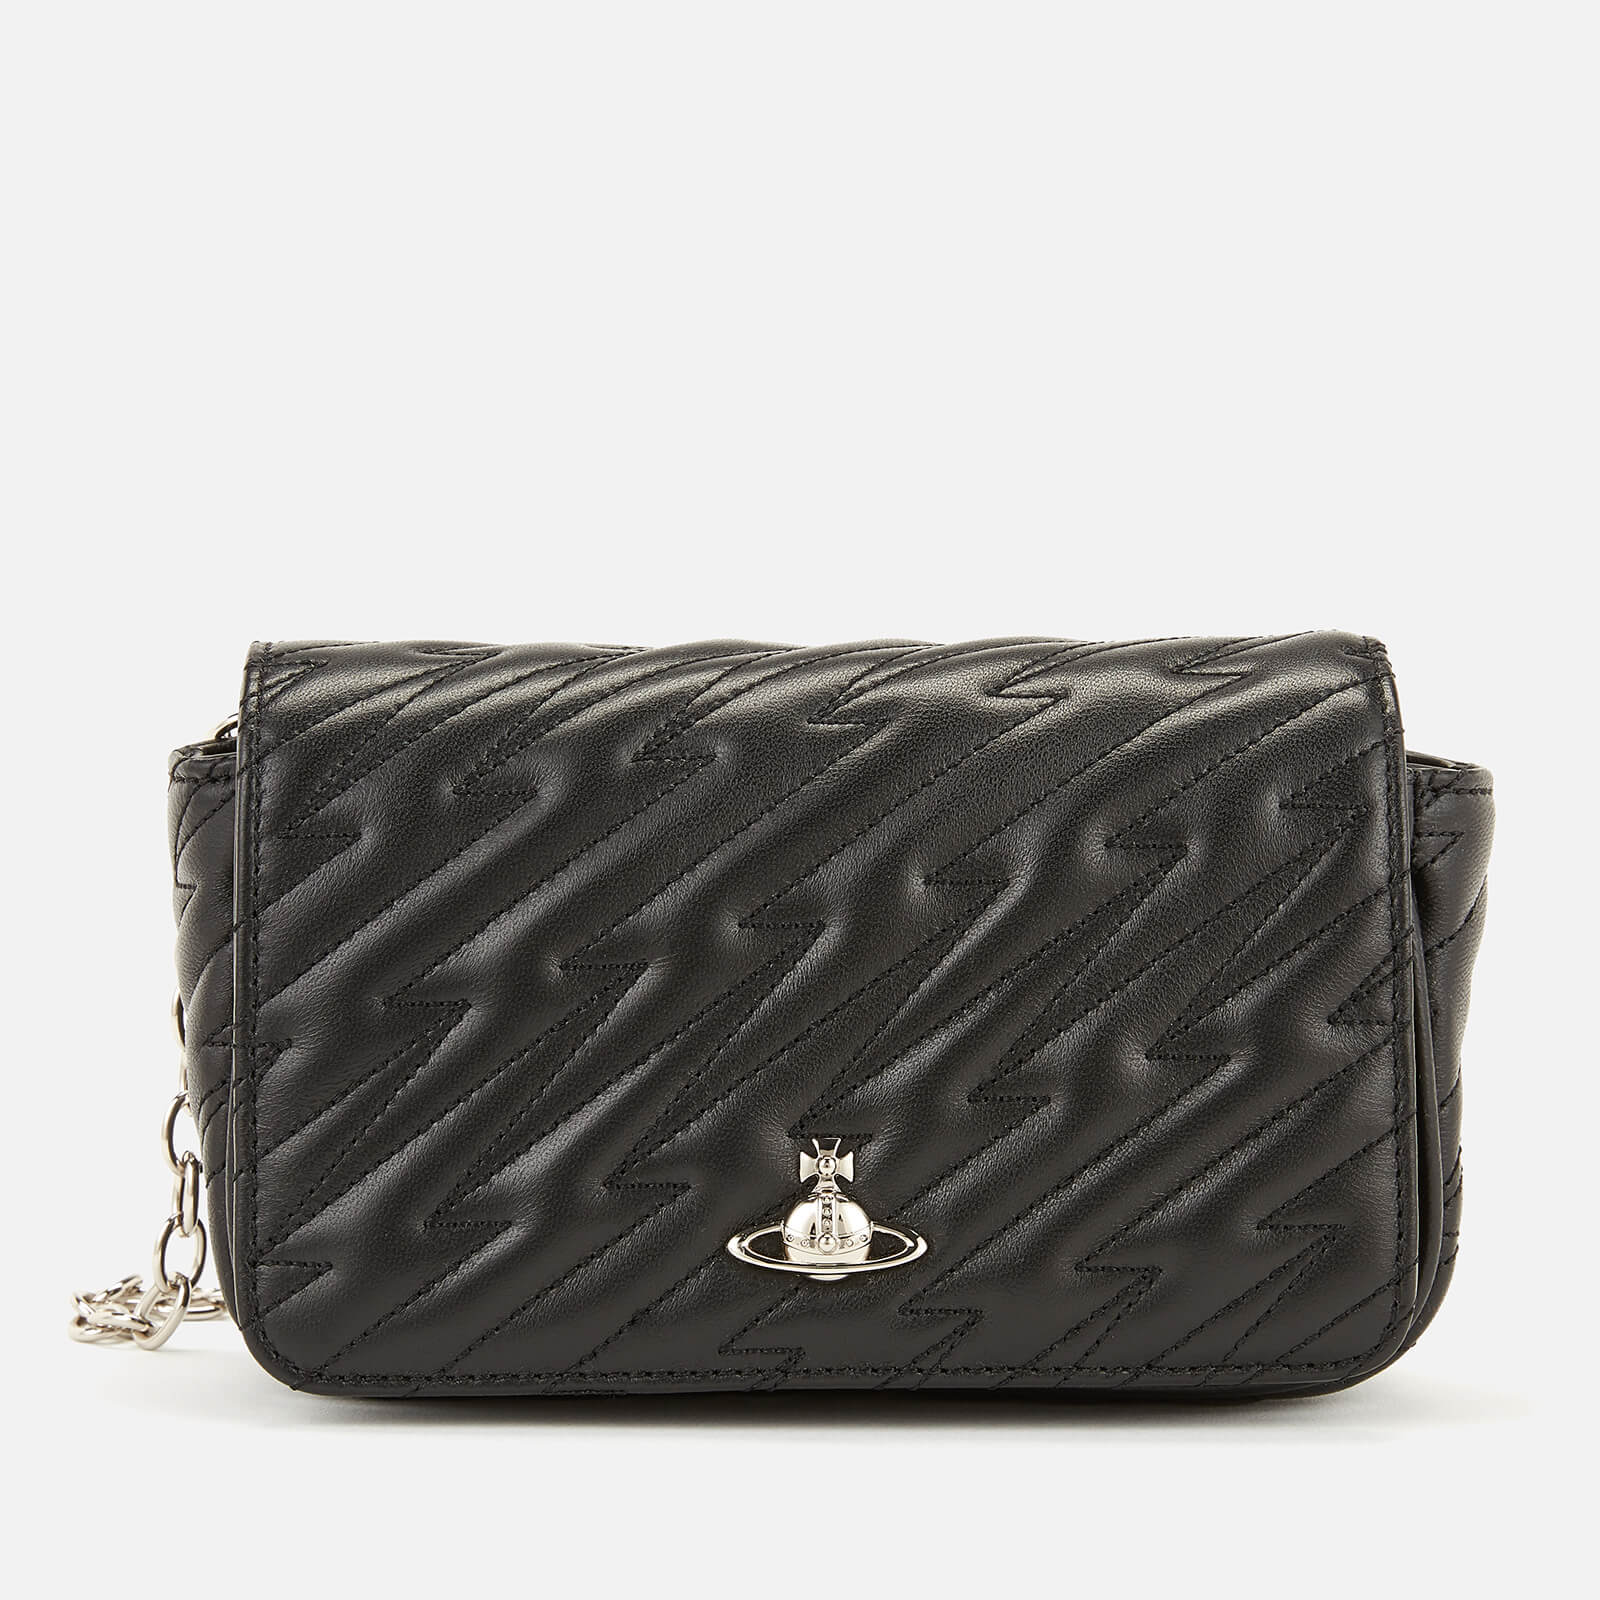 3ec96a72b617 Vivienne Westwood Women's Coventry Mini Cross Body Bag - Black - Free UK  Delivery over £50